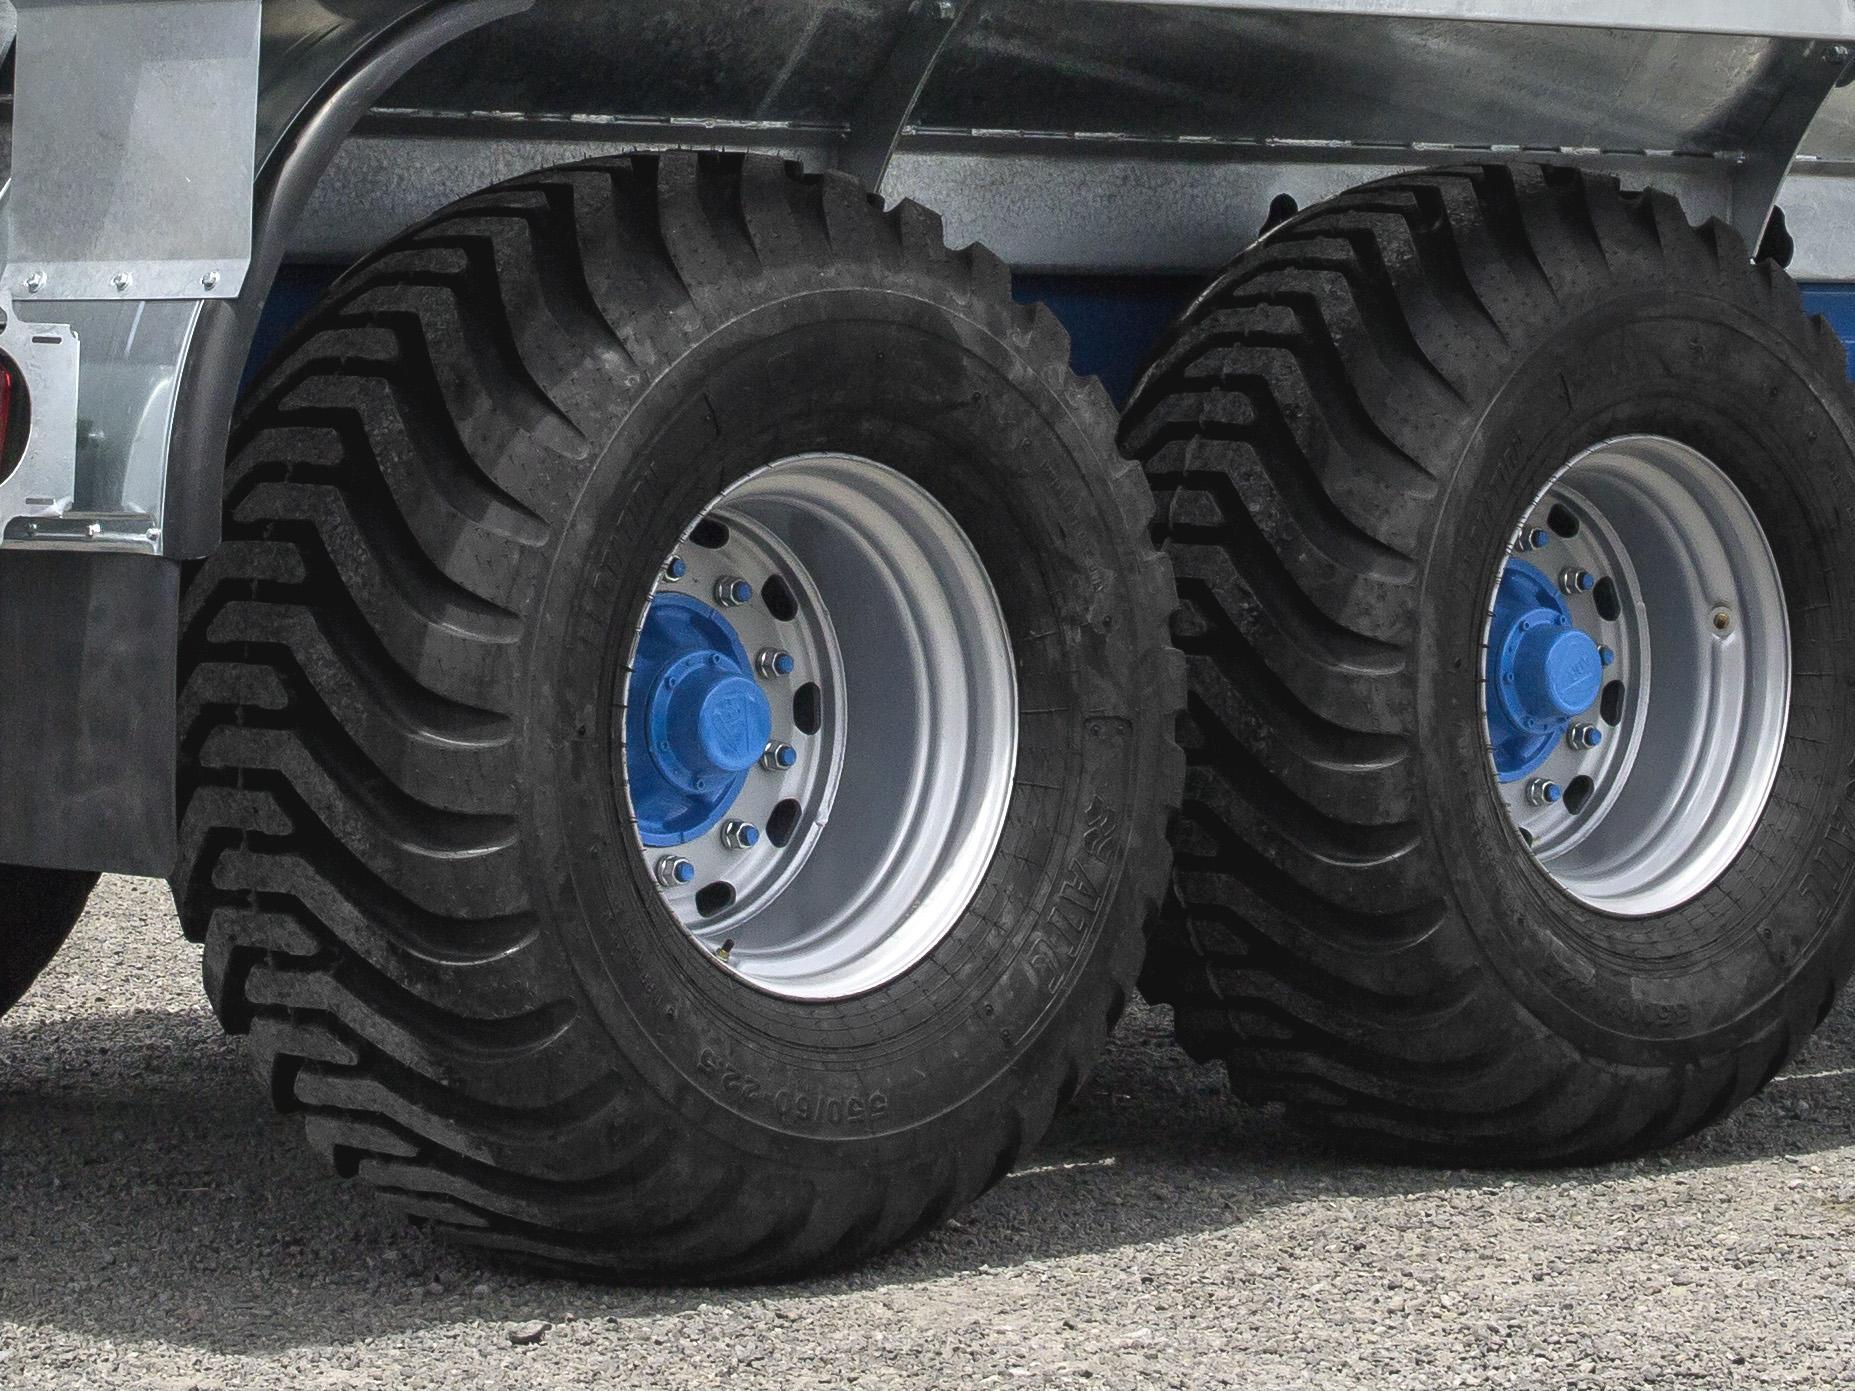 Large flotation tyres for safety on rolling terrain and reduced soil compaction. 550/60 - 22.5.